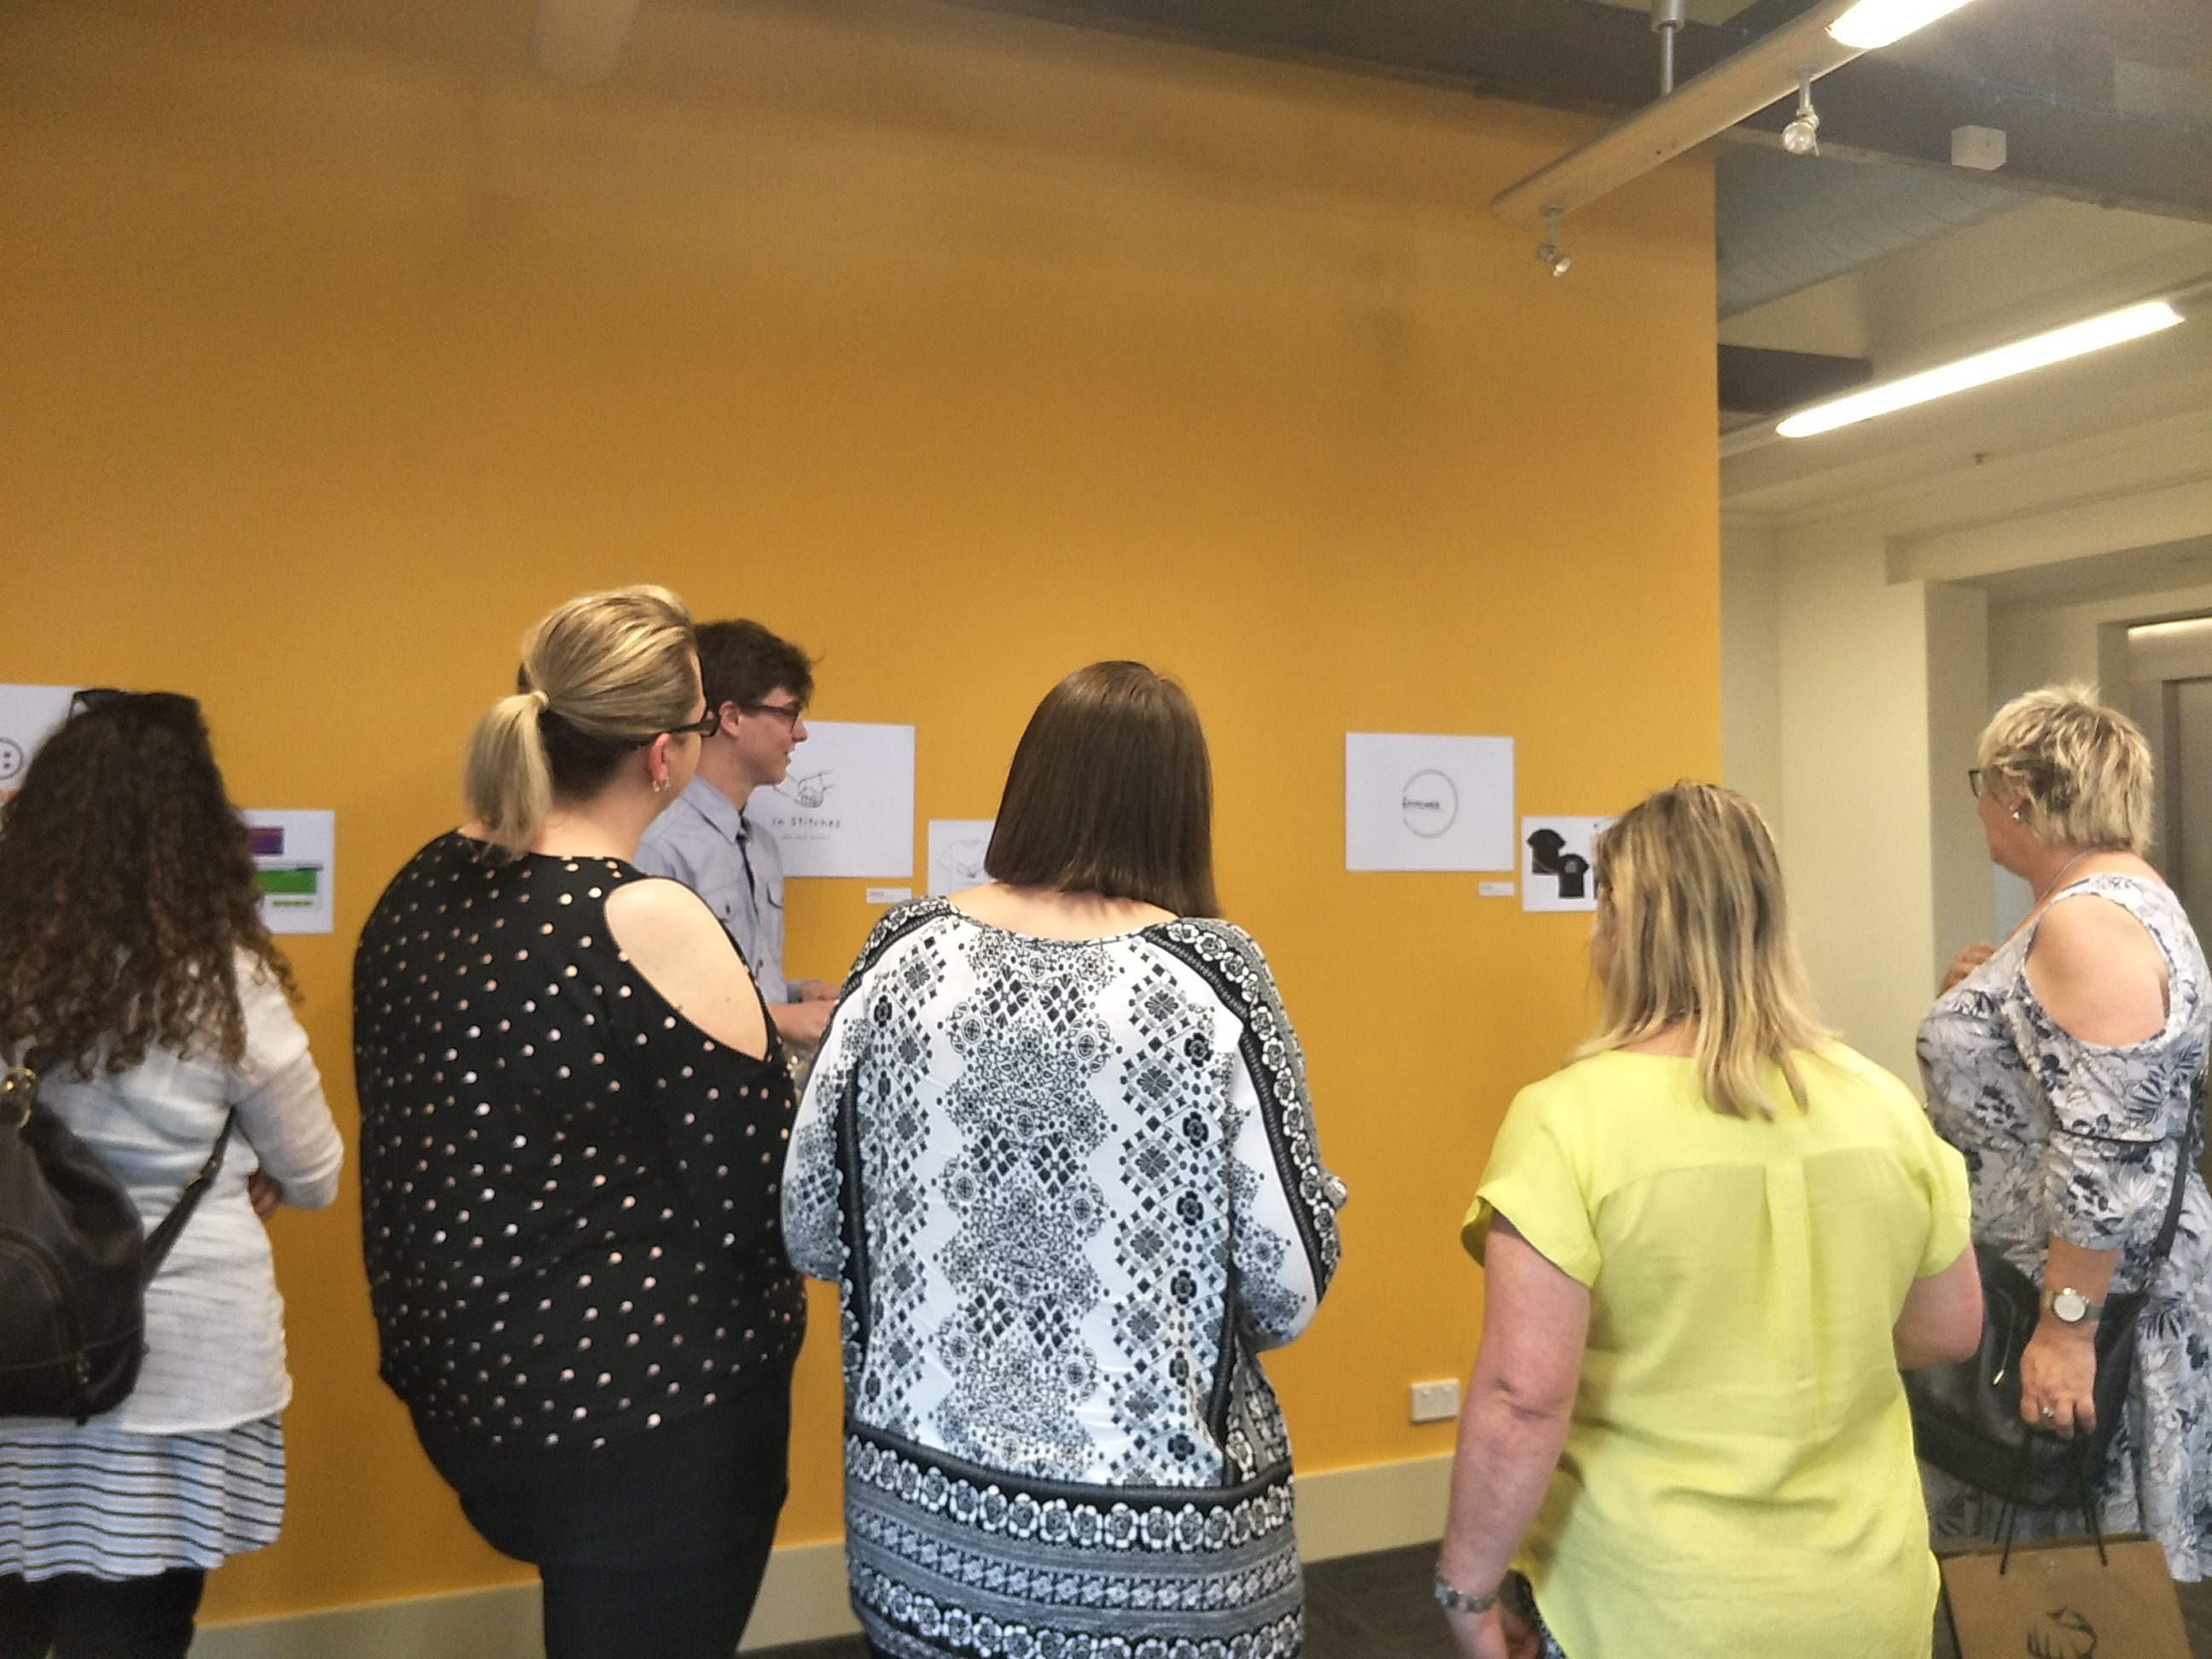 People looking at student work displayed in the Freerange Future office space.